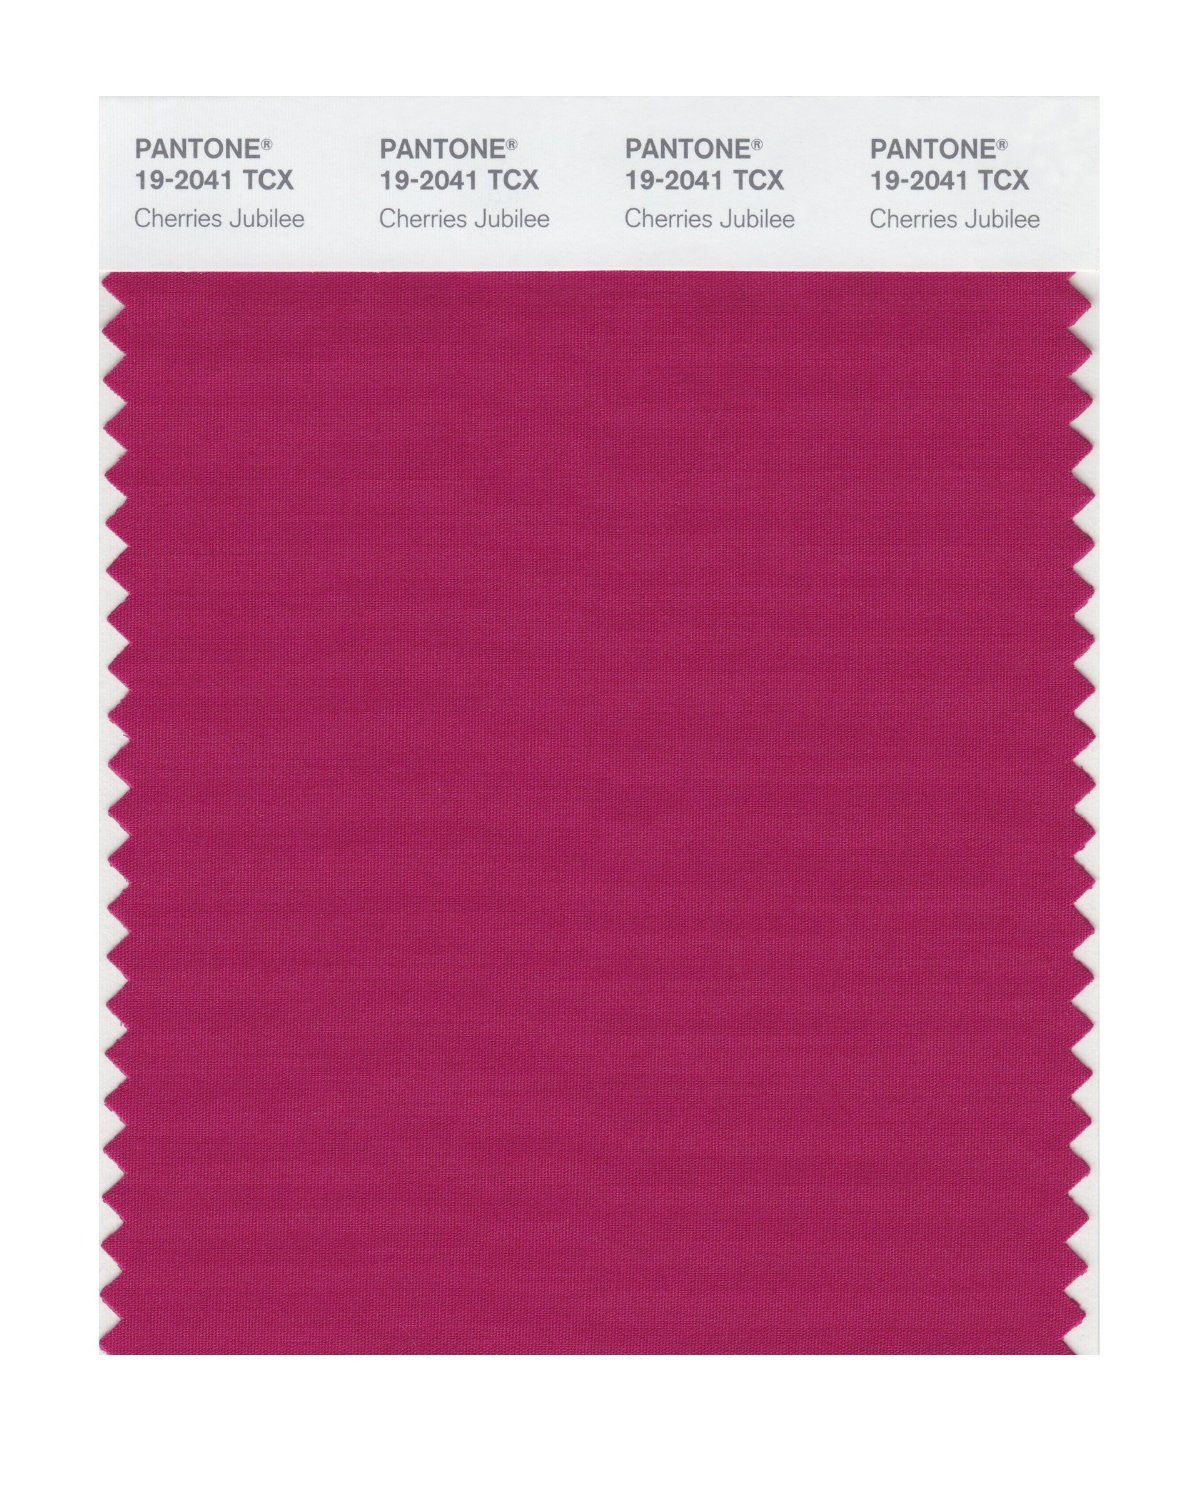 Pantone Smart Swatch 19-2041 Cherries Jubilee